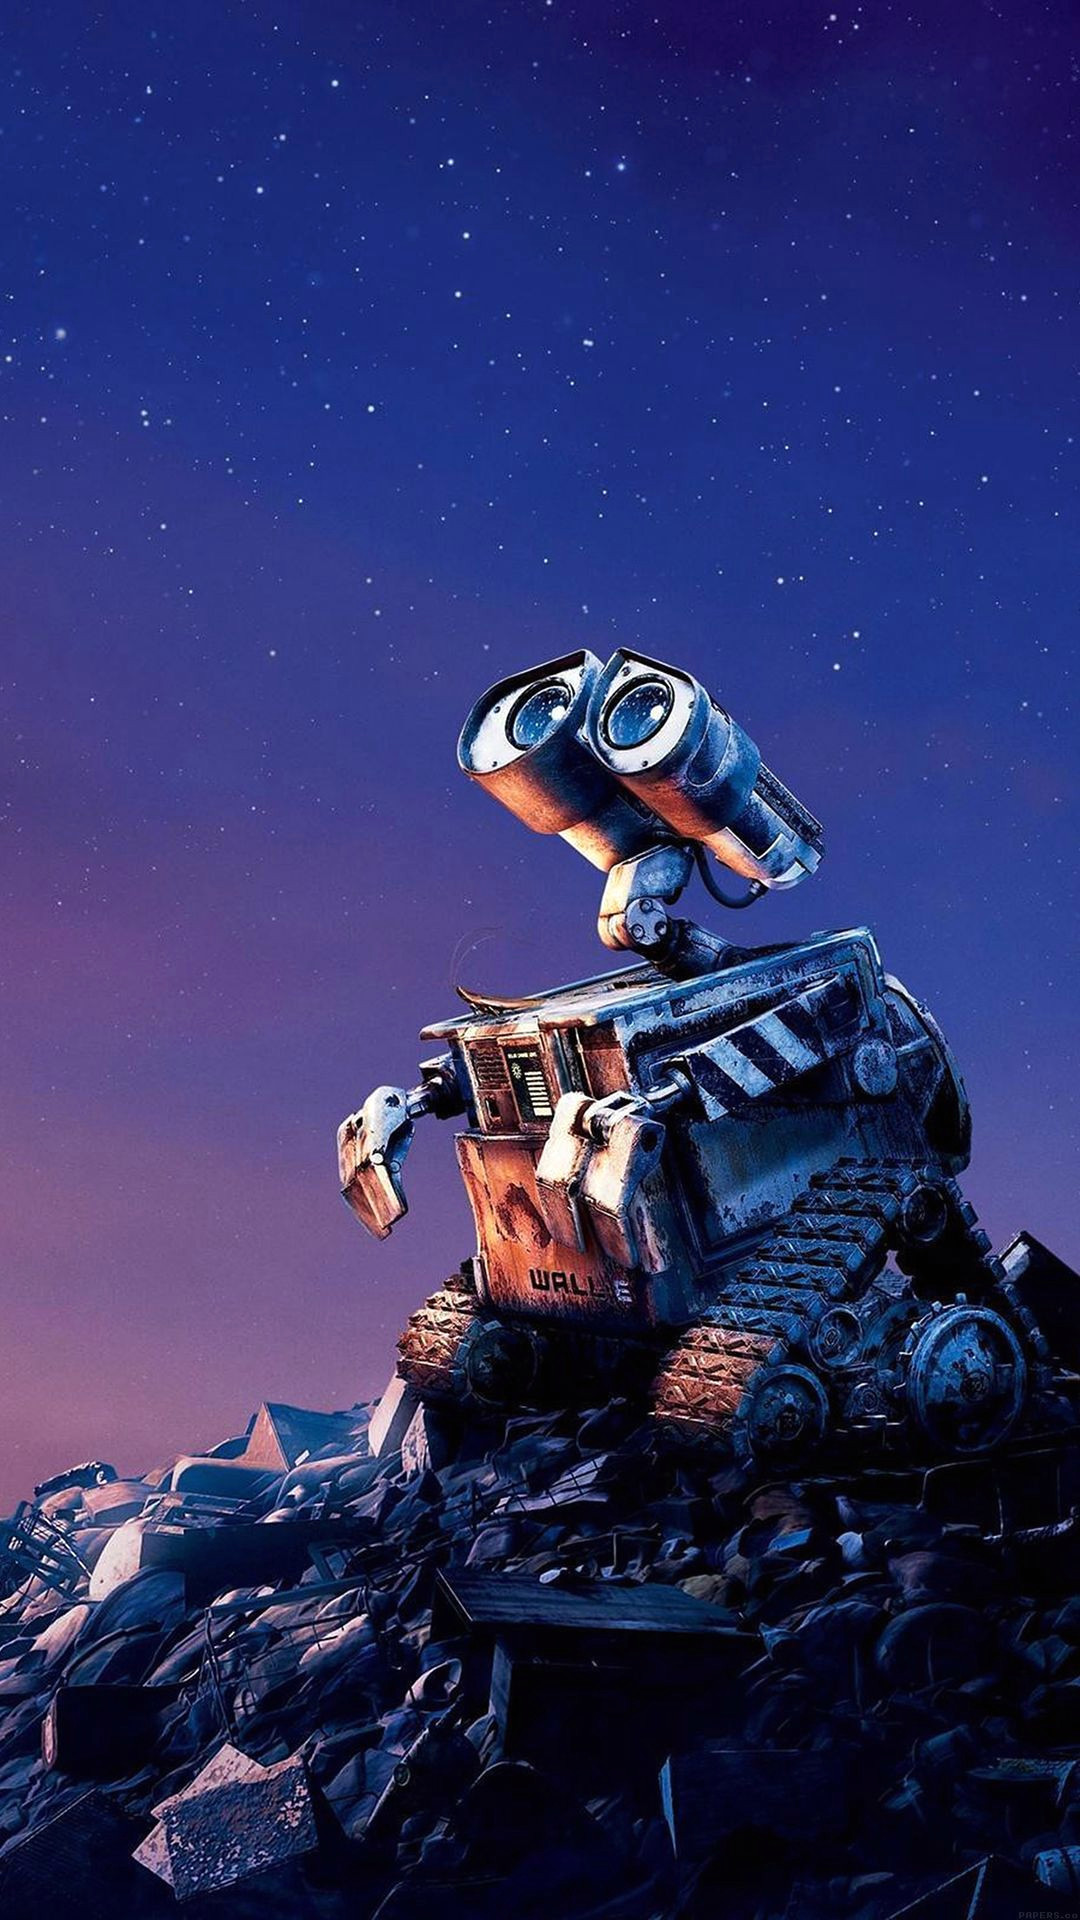 Res: 1080x1920, Villain iPhone 5 Wallpapers Tap Image for More iPhone Disney Wallpaper Wall  E Disney Want Go